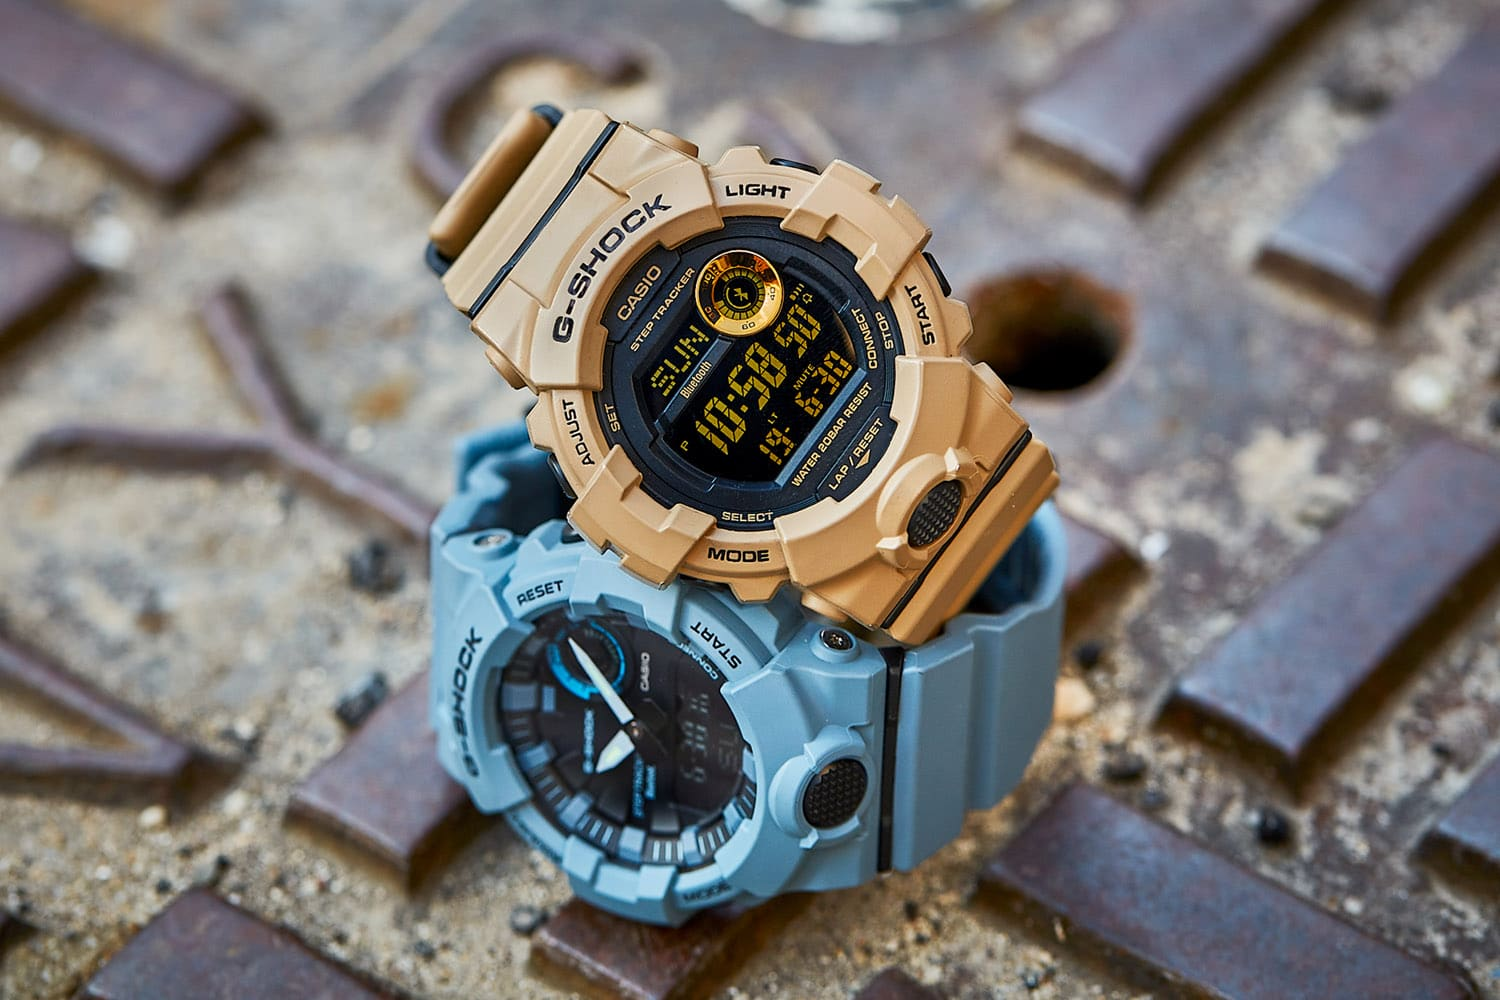 G-SHOCK's Most Advanced Fitness Watch to Date – The GBD800UC